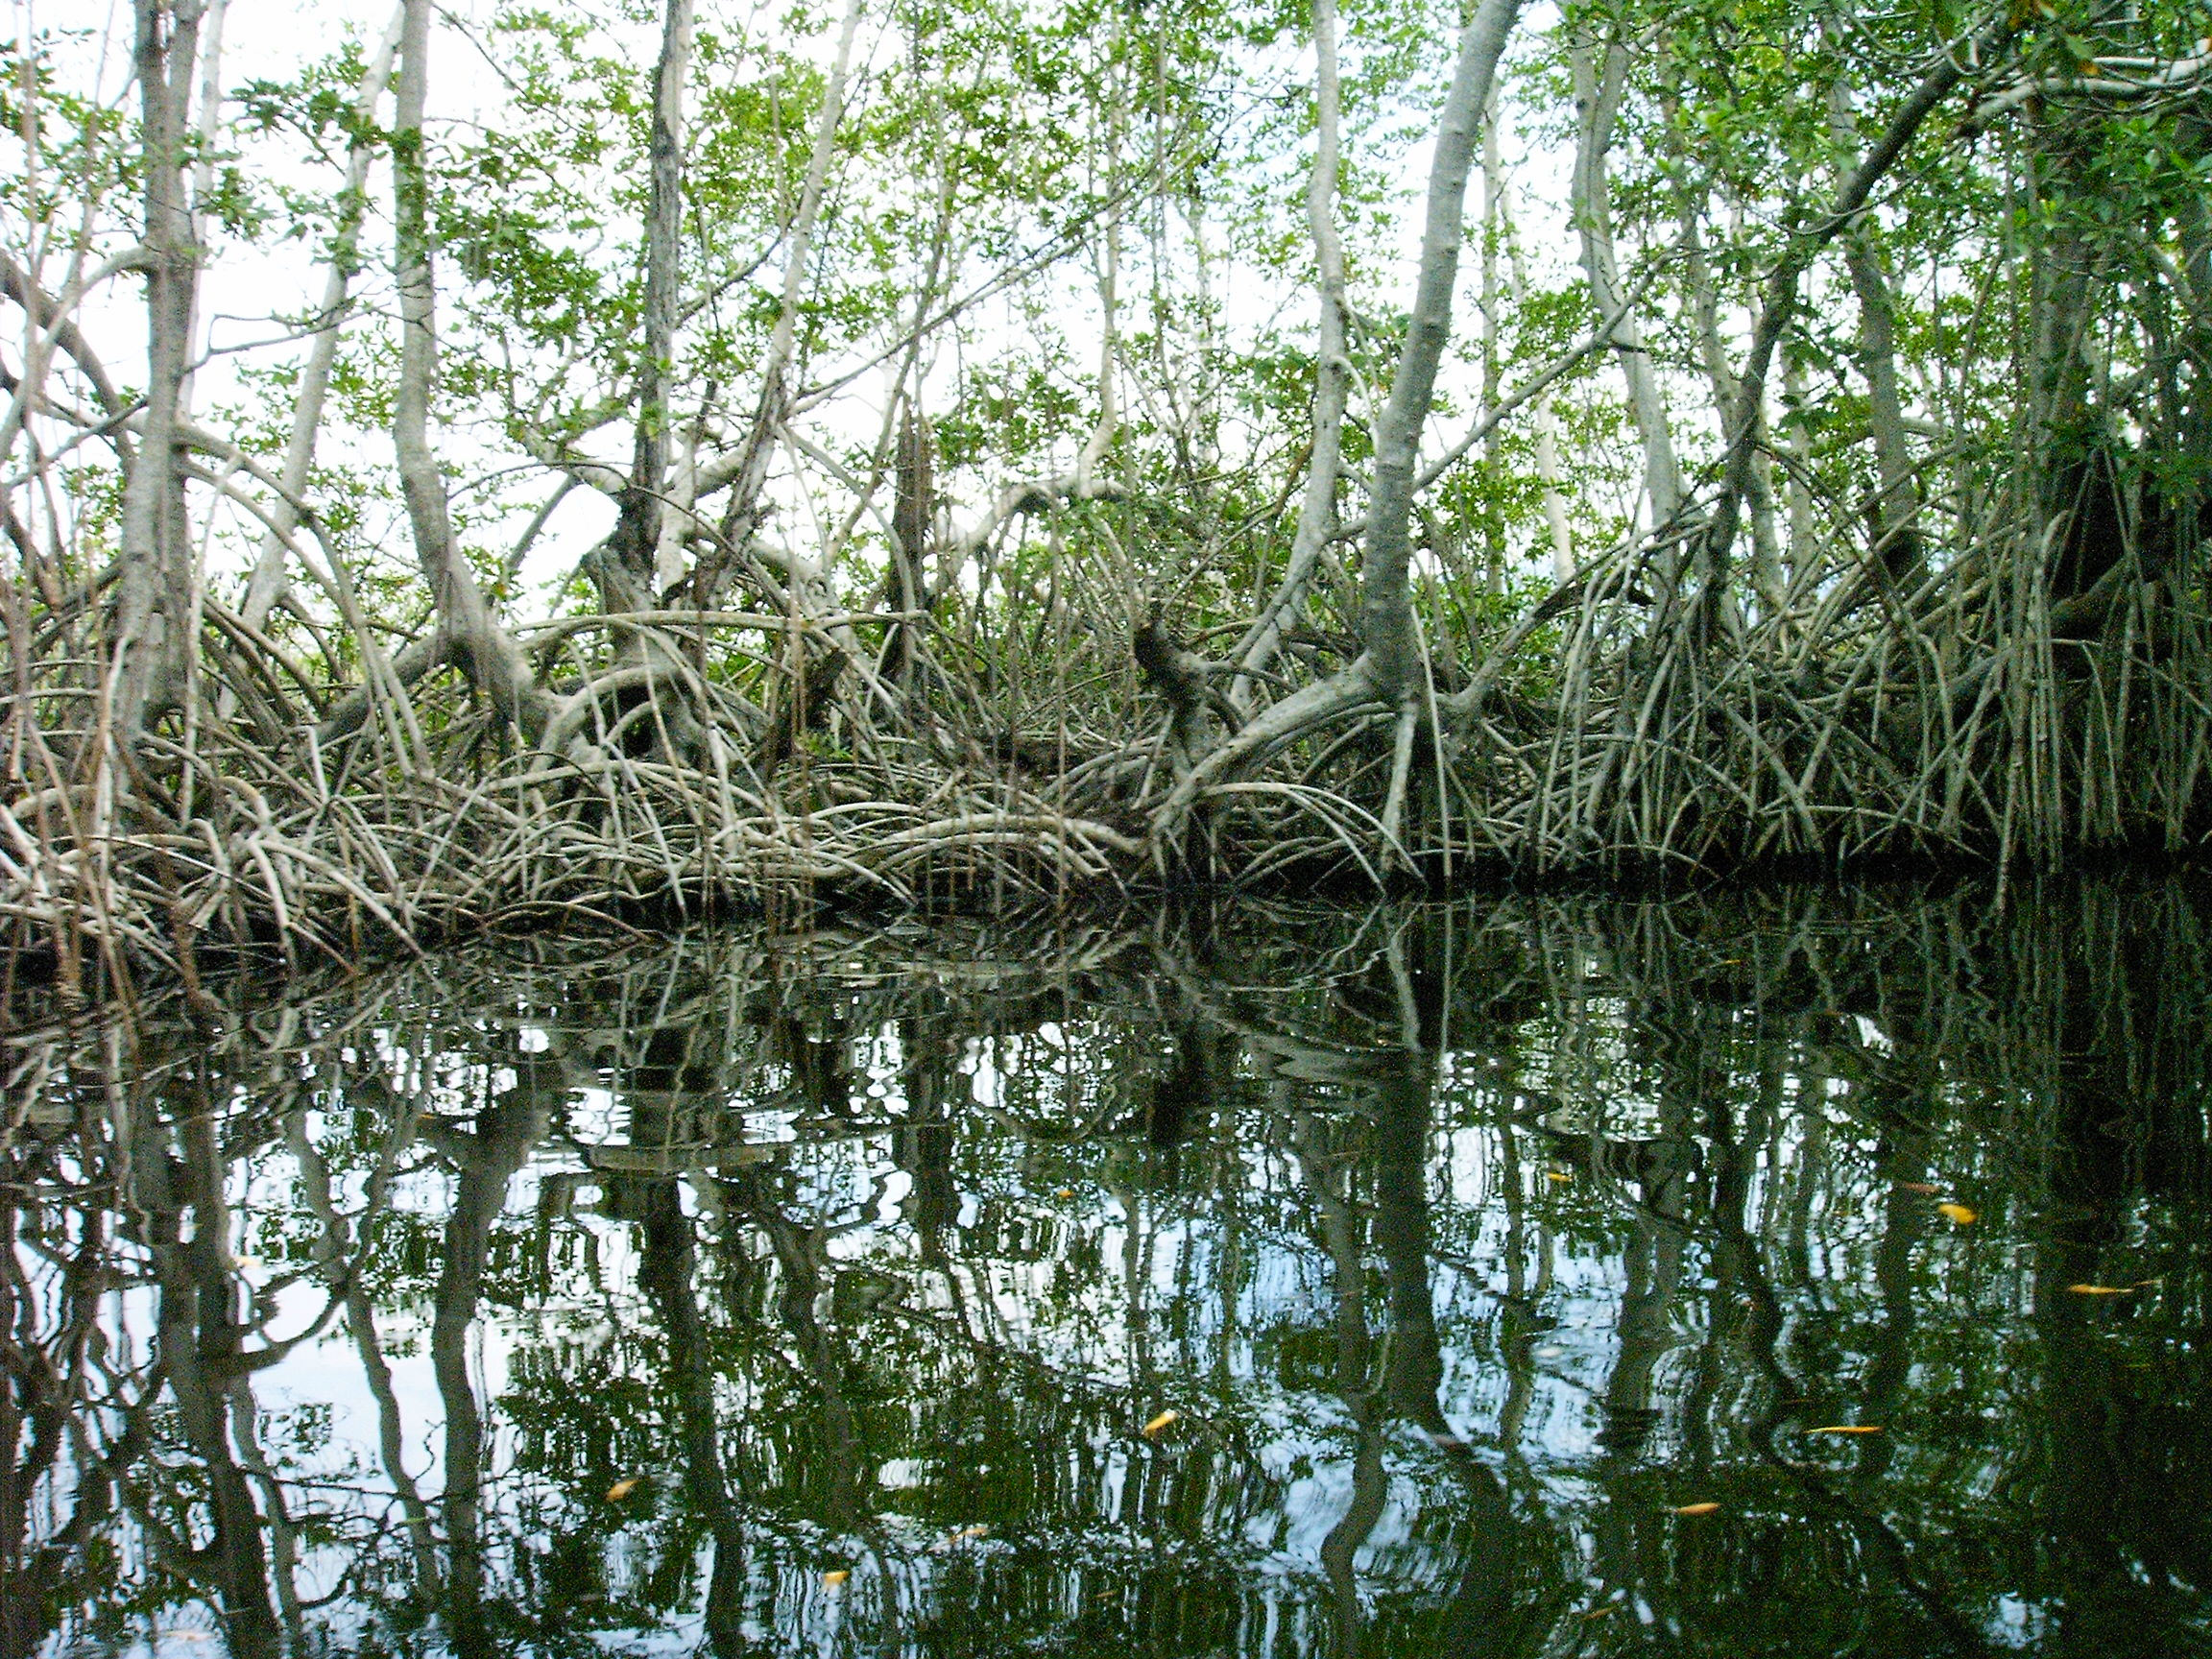 Mangroves in Jamaica